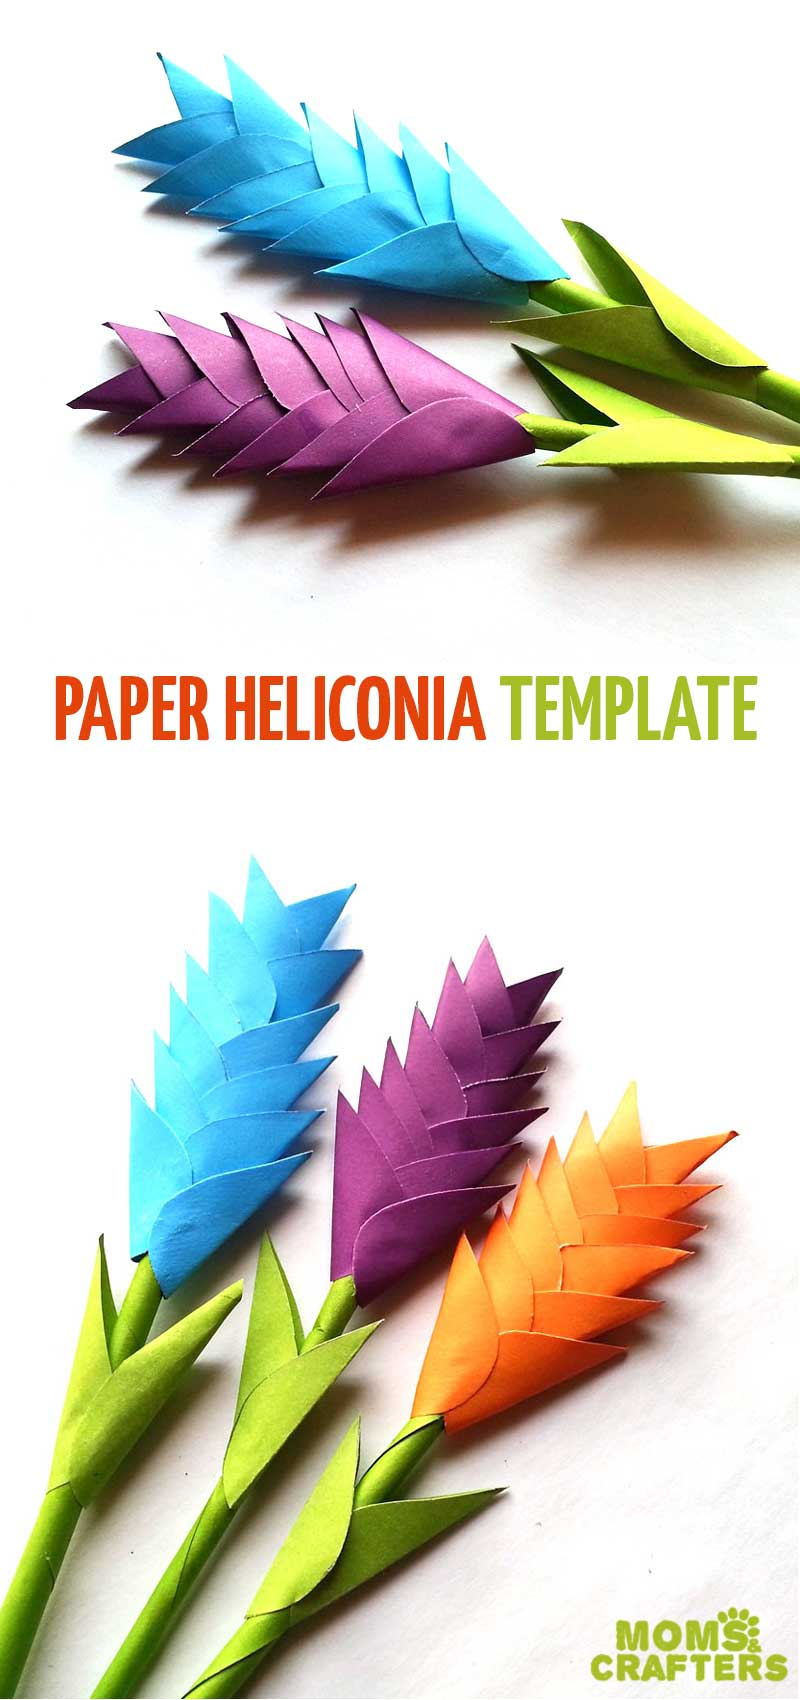 Make this beautiful paper helicona